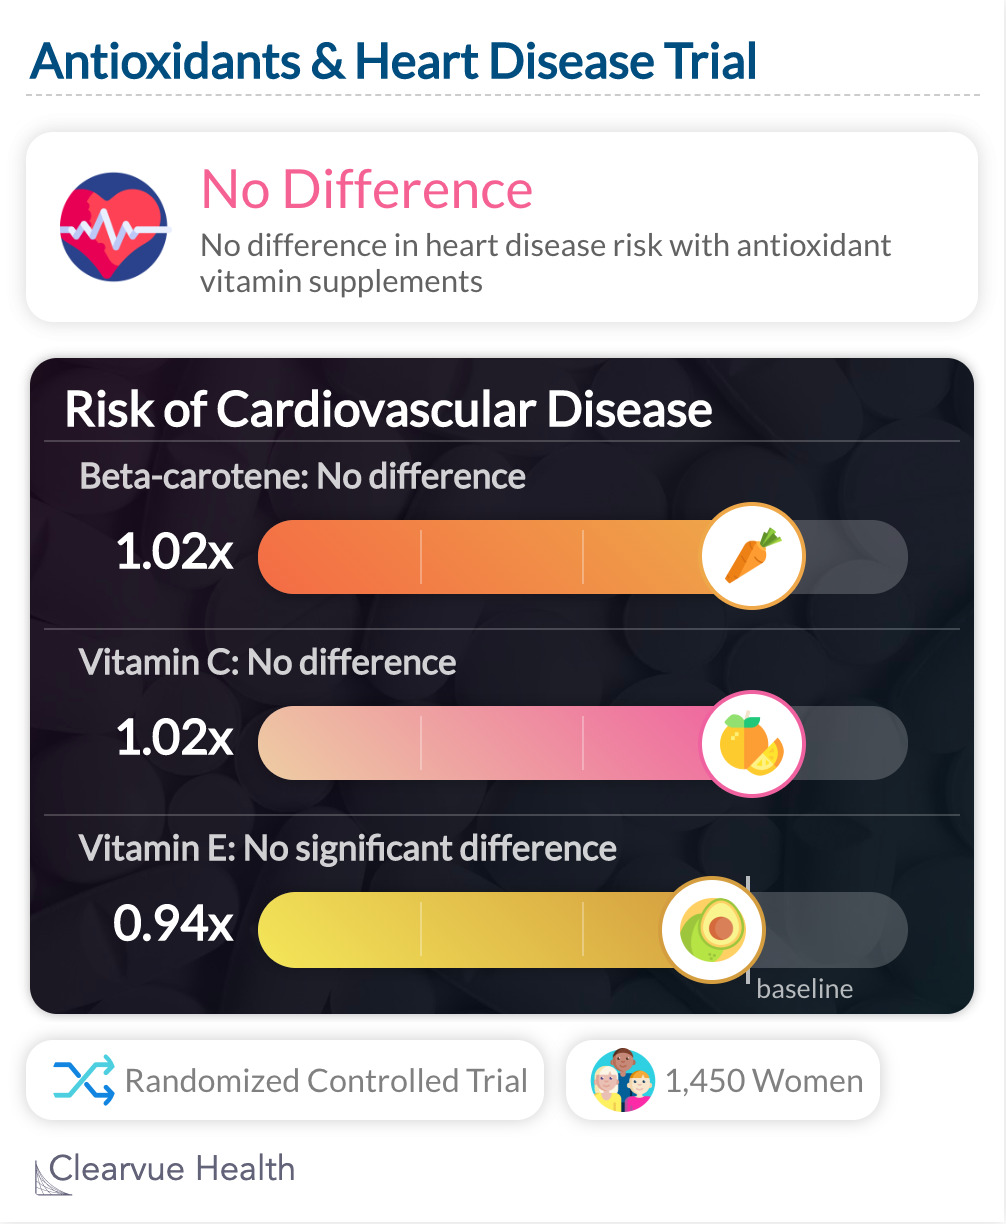 Antioxidants & Heart Disease Trial